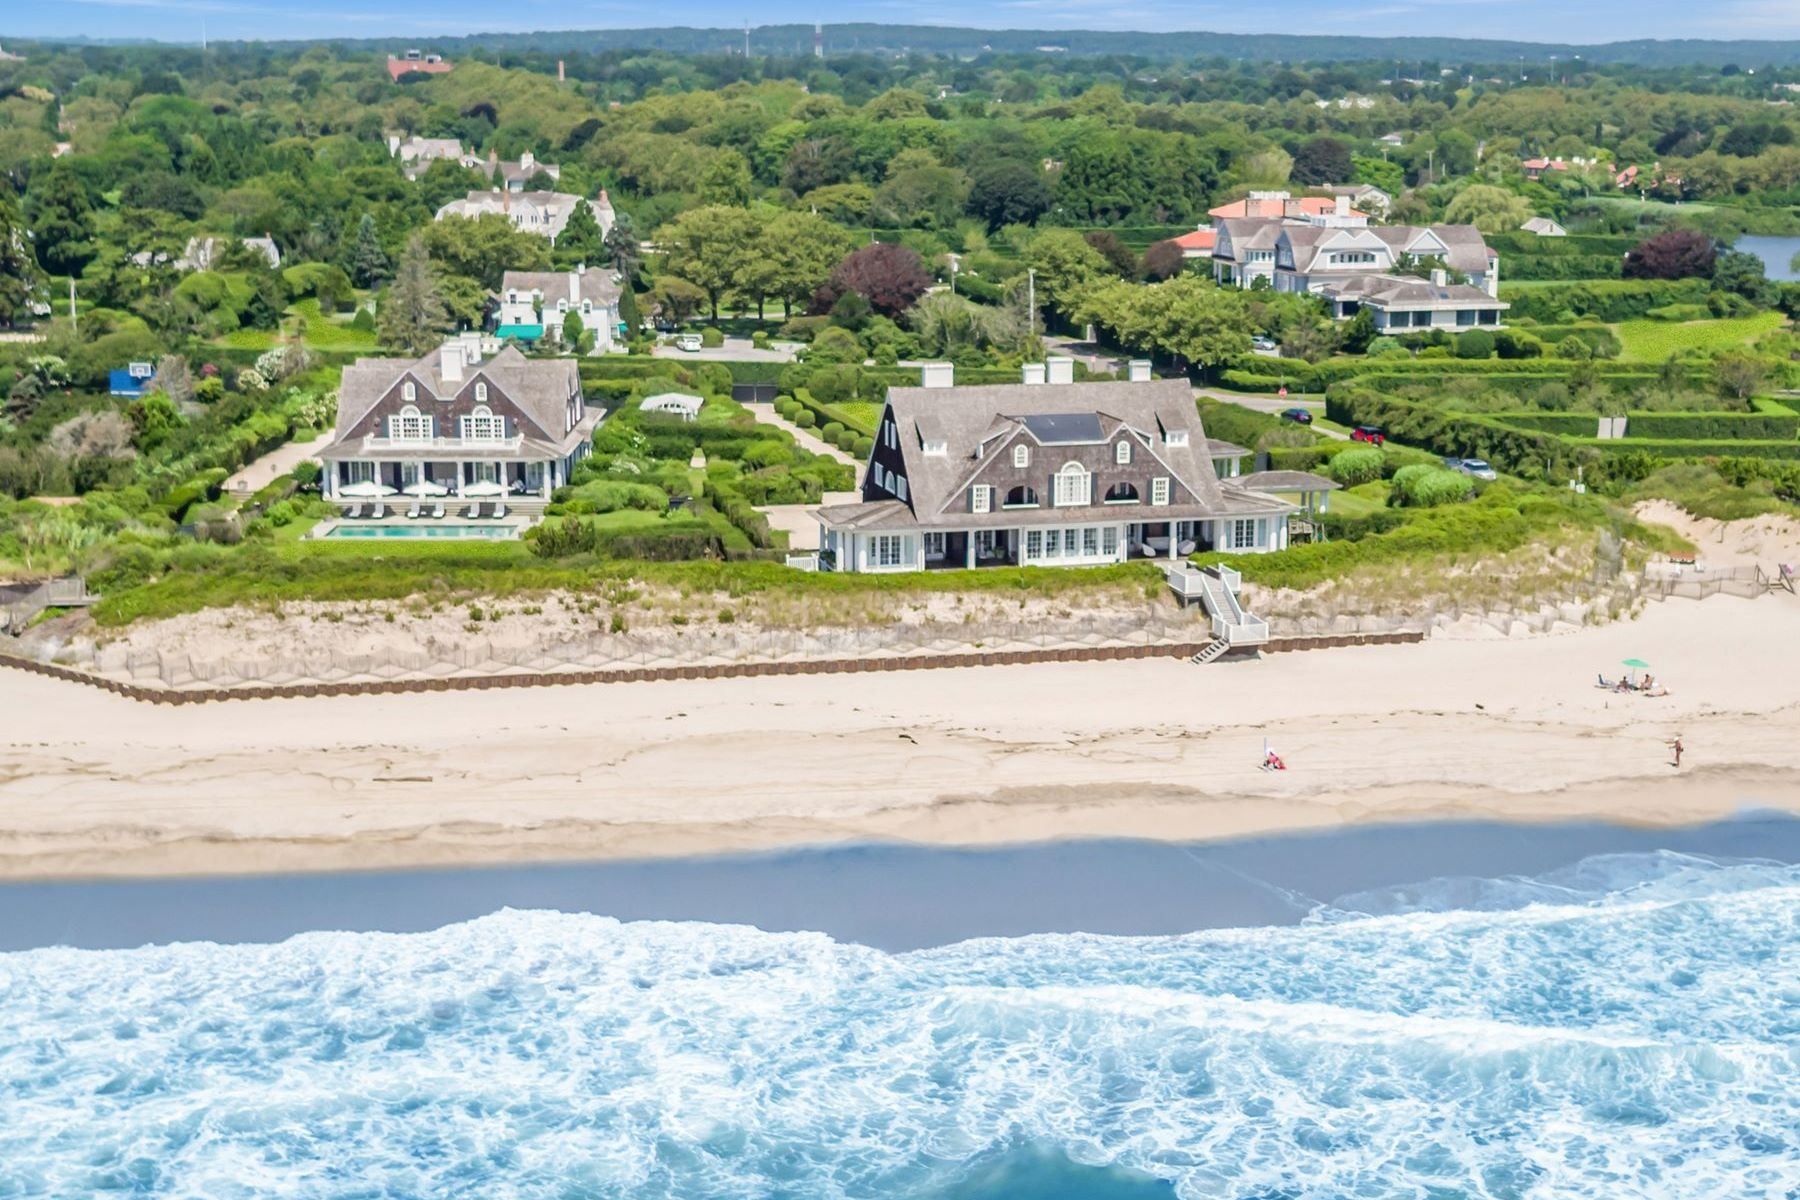 Property for Sale at Historic Gin Lane Oceanfront 376 Gin Lane Southampton, New York 11968 United States